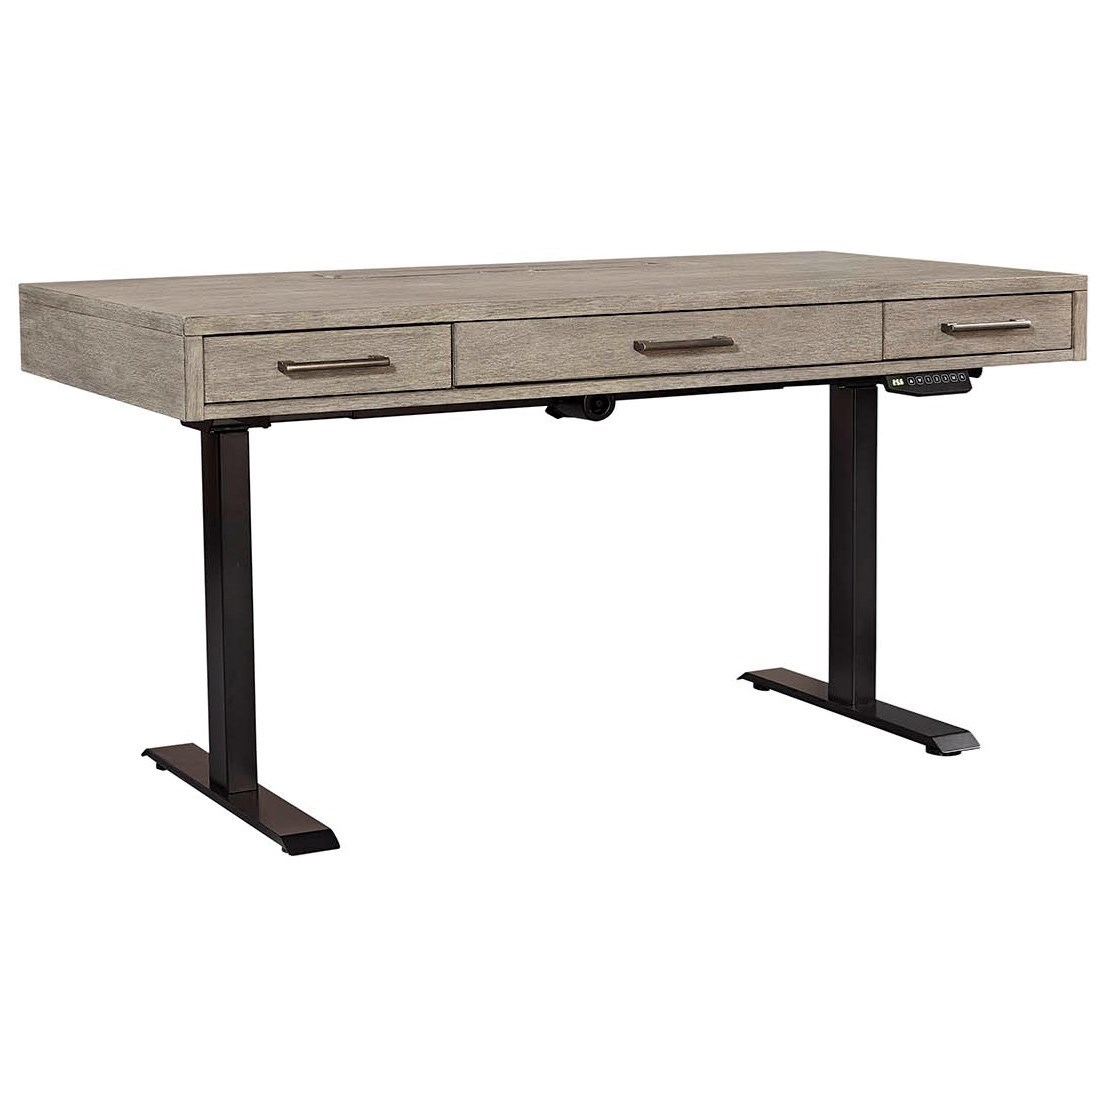 Platinum Adjustable Height Desk by Aspenhome at Baer's Furniture